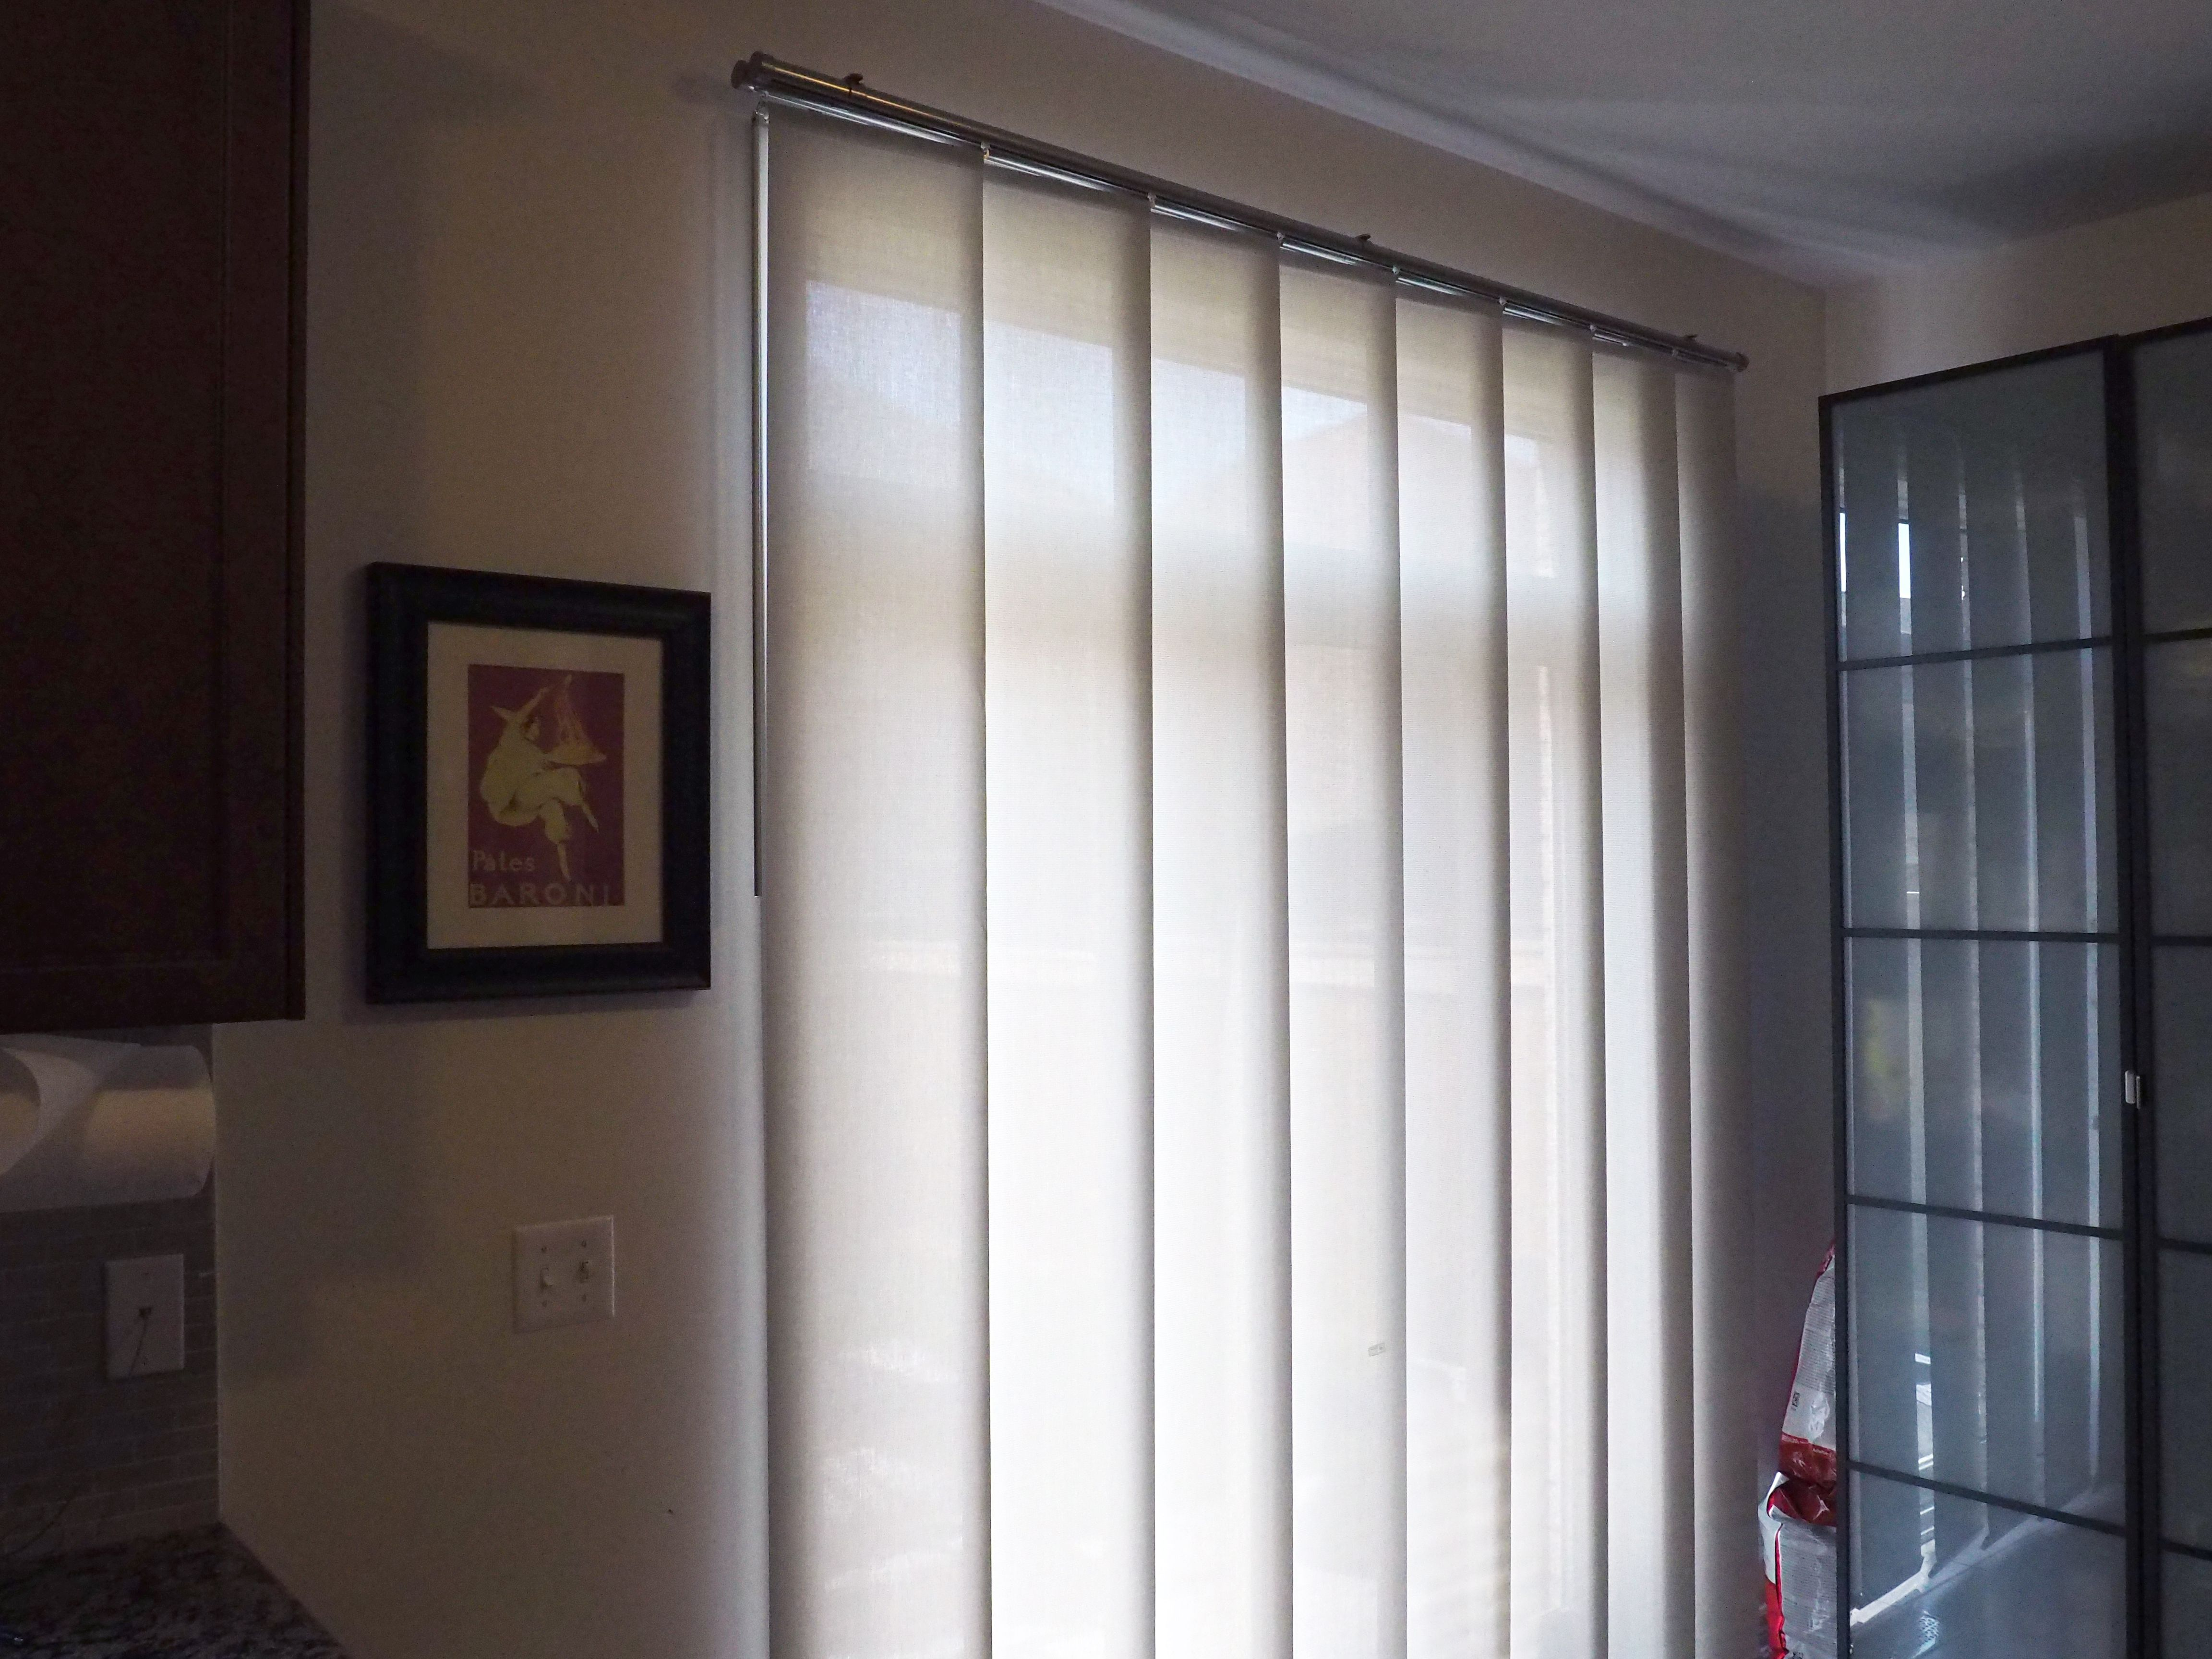 Charmant Panel Track Blind Custom Made Blinds Blinds To Go Within Proportions 1650 X  1100 Panel Track Blinds For Sliding Glass Doors